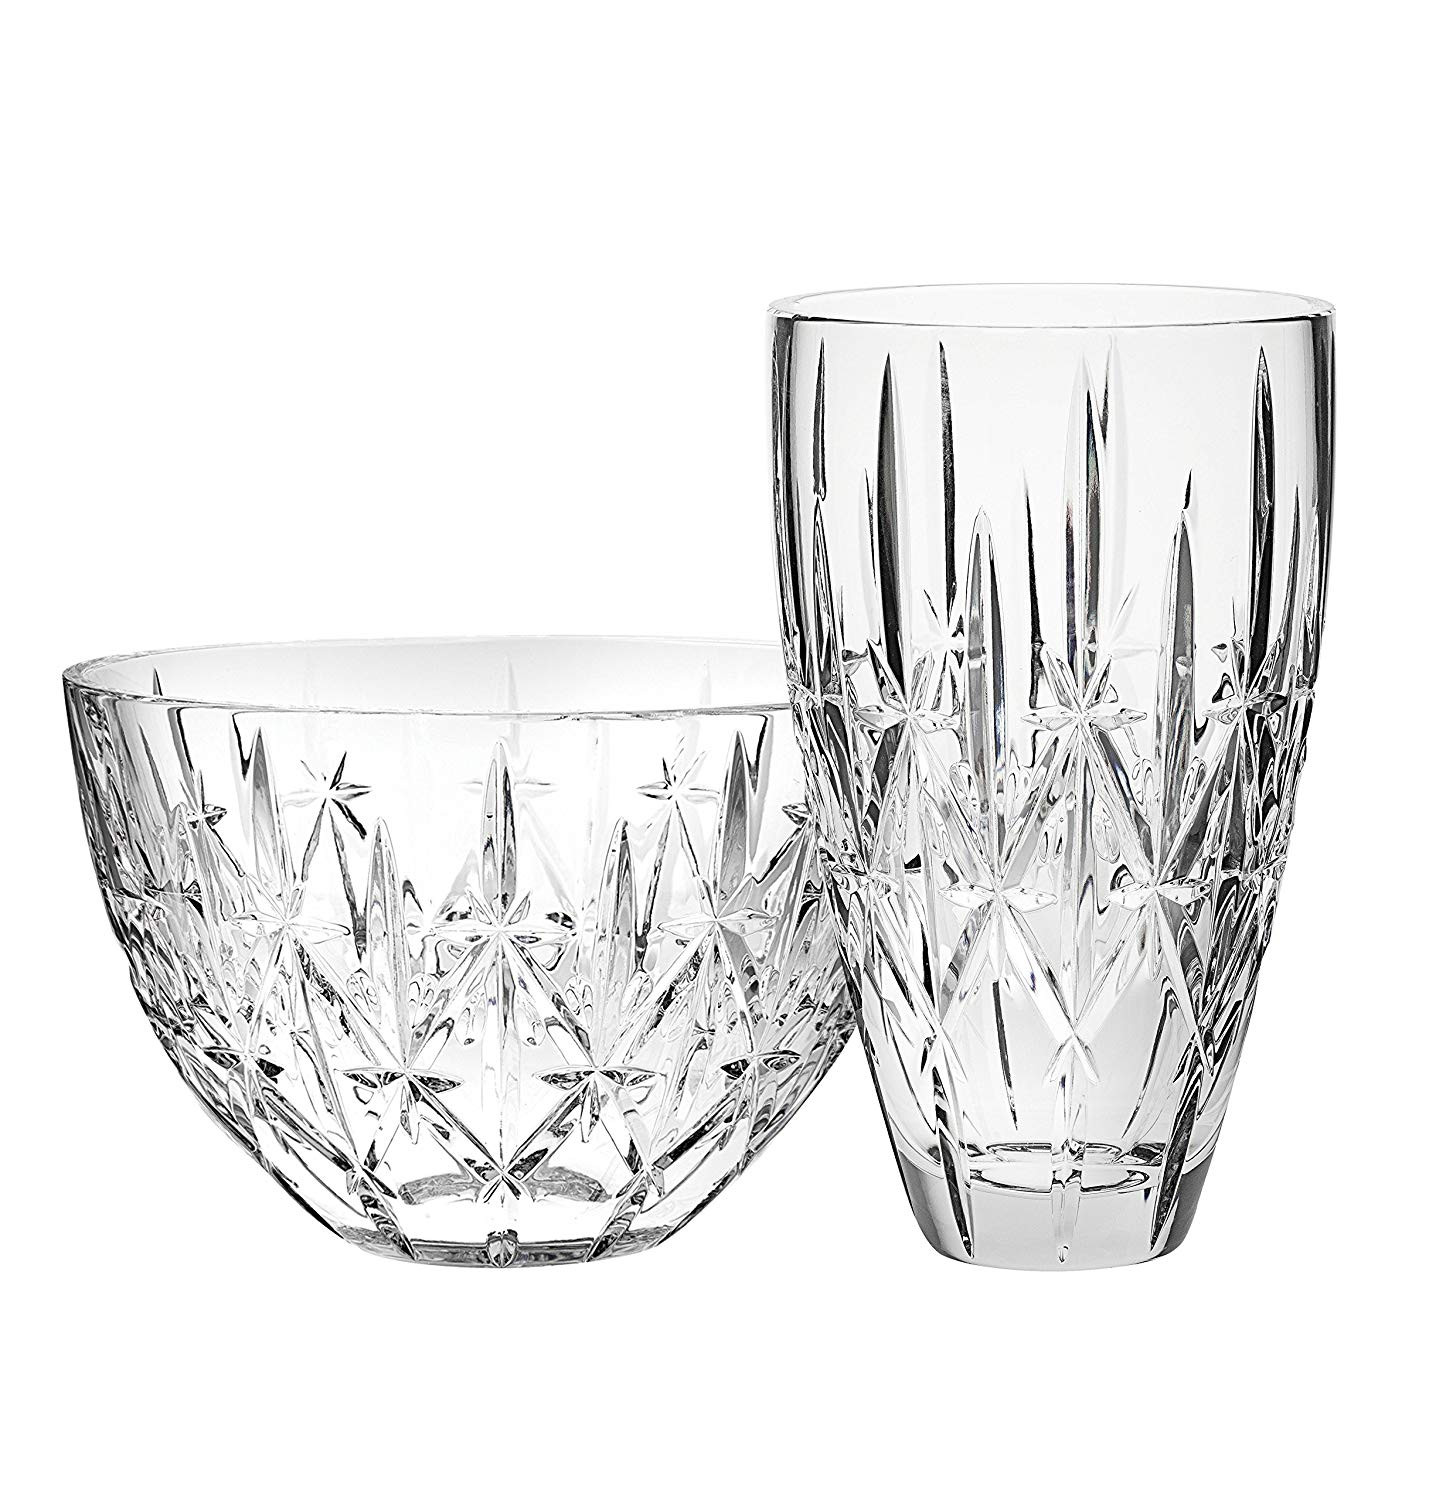 11 Nice Marquis by Waterford 9 Markham Vase 2021 free download marquis by waterford 9 markham vase of amazon com marquis by waterford sparkle bowl 9 home kitchen intended for 91ze4xzhccl sl1500